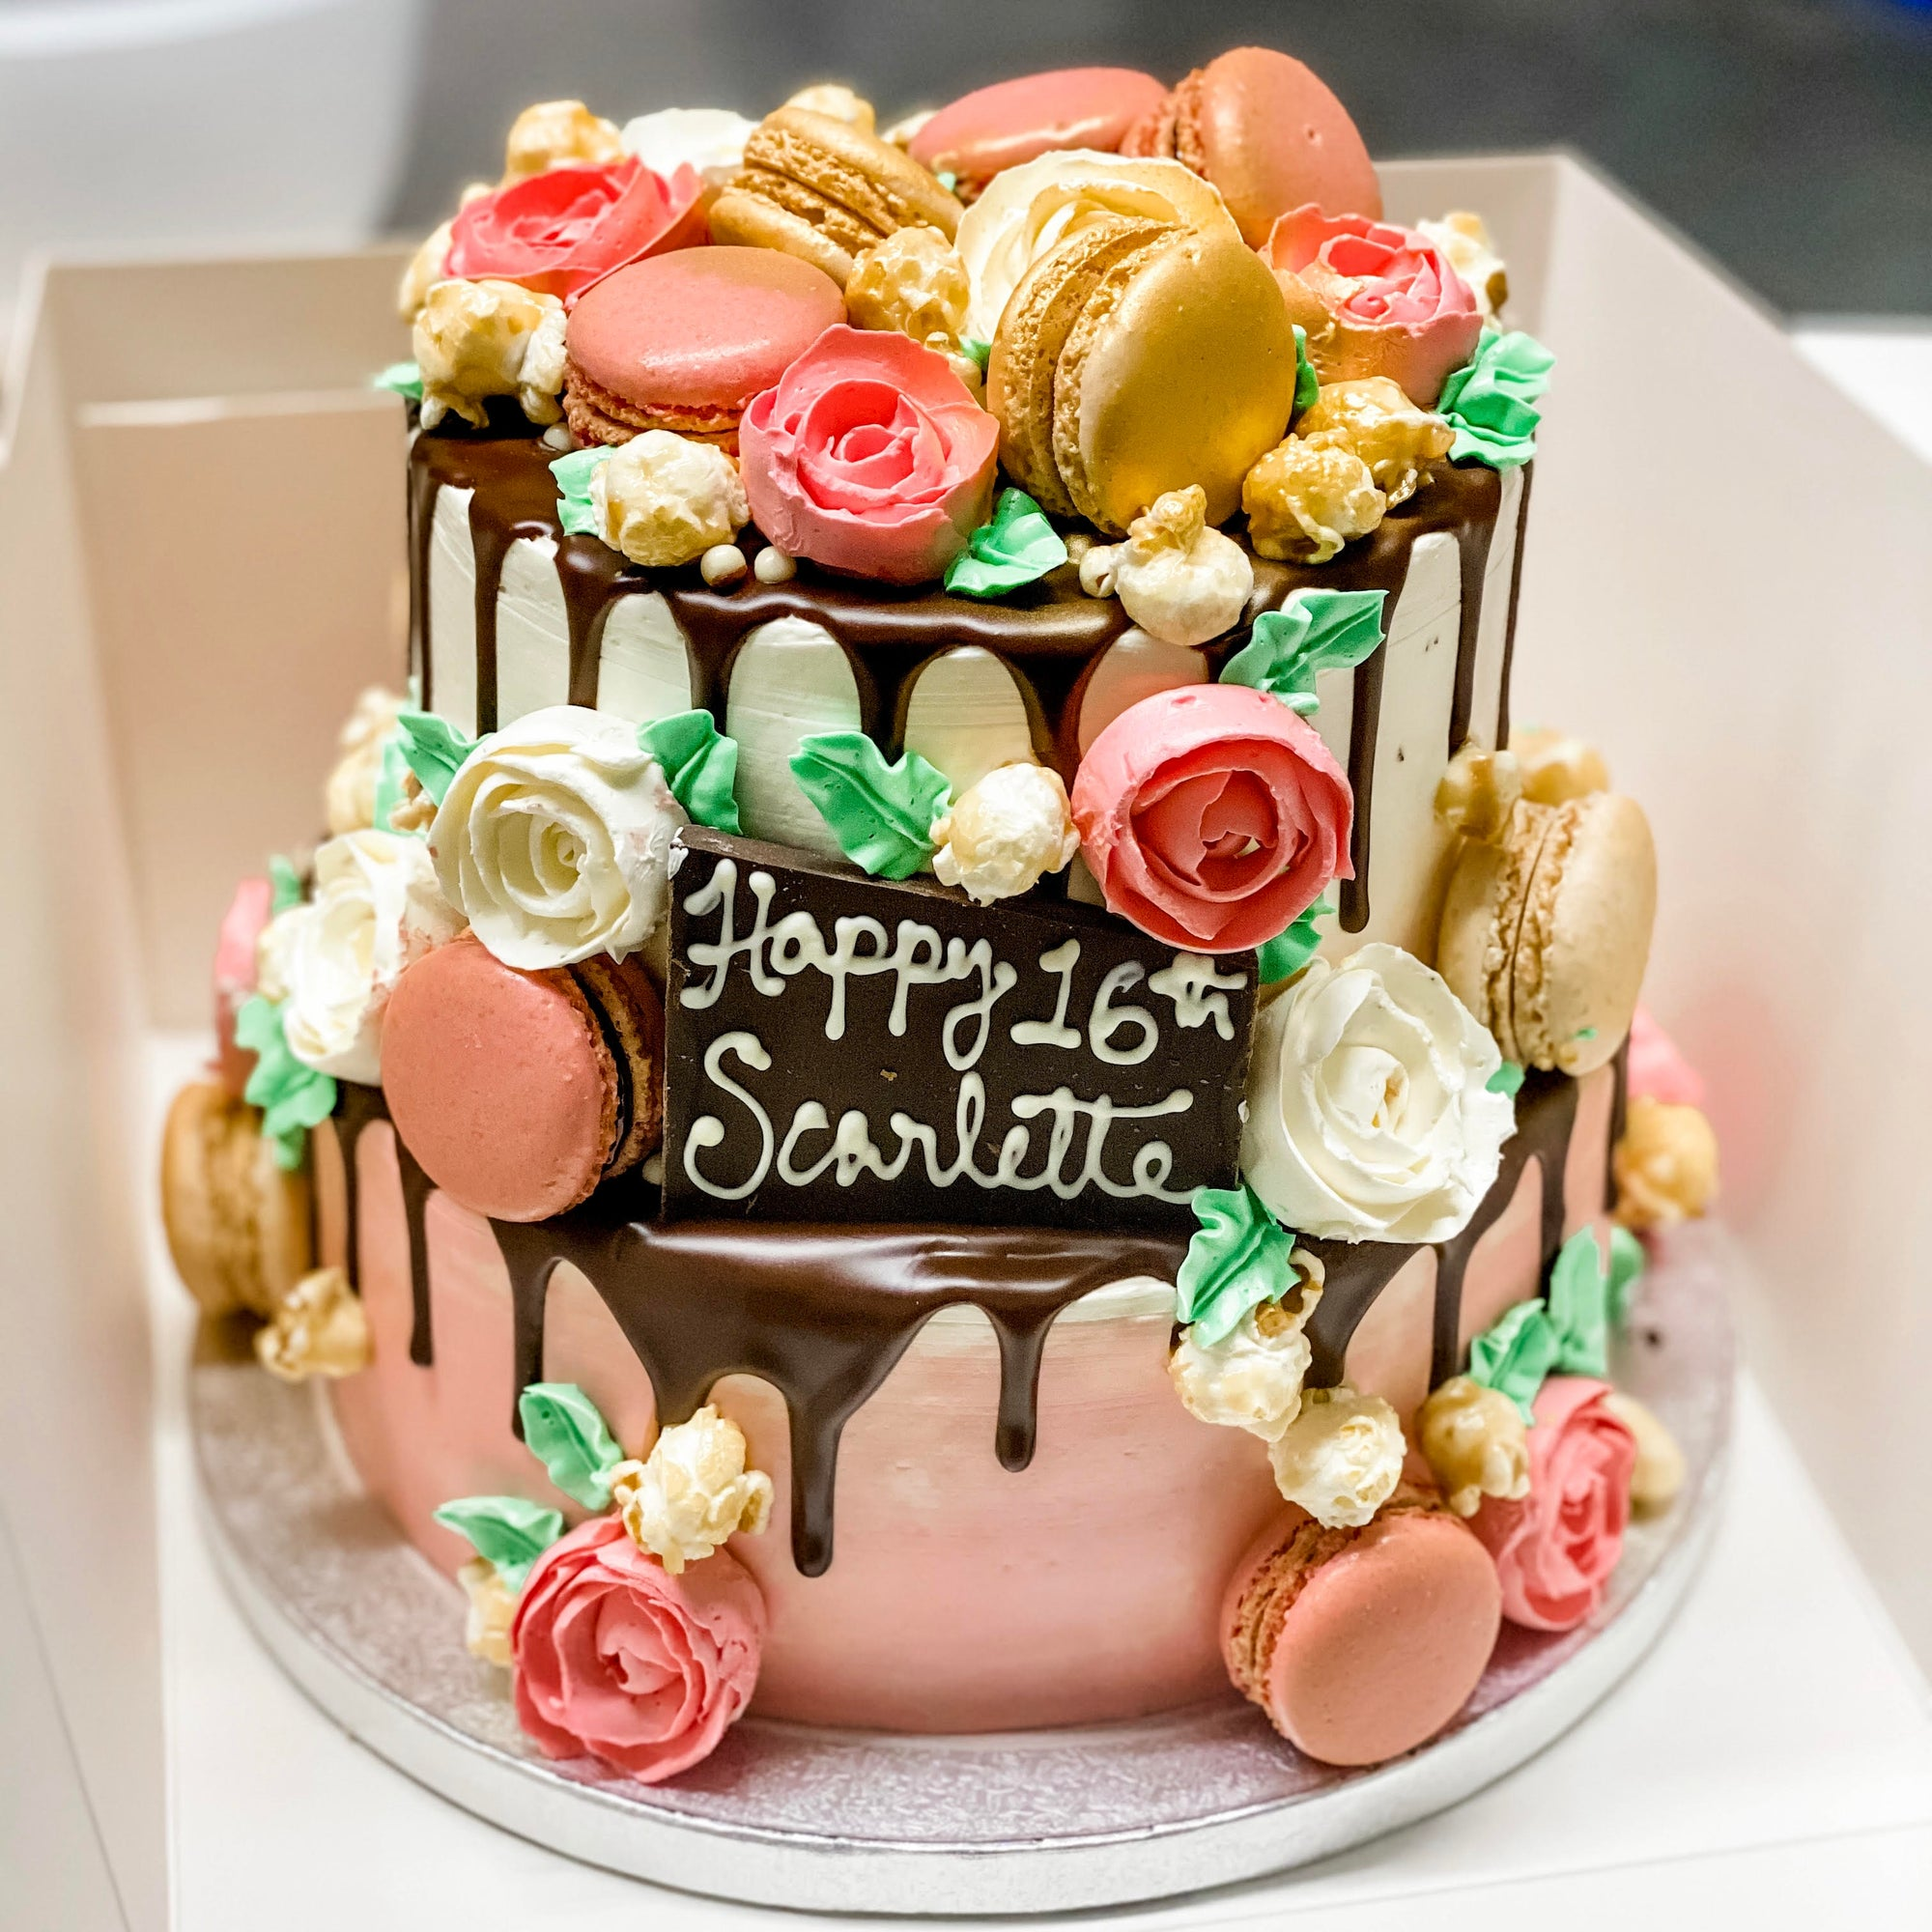 Best Birthday Cakes London